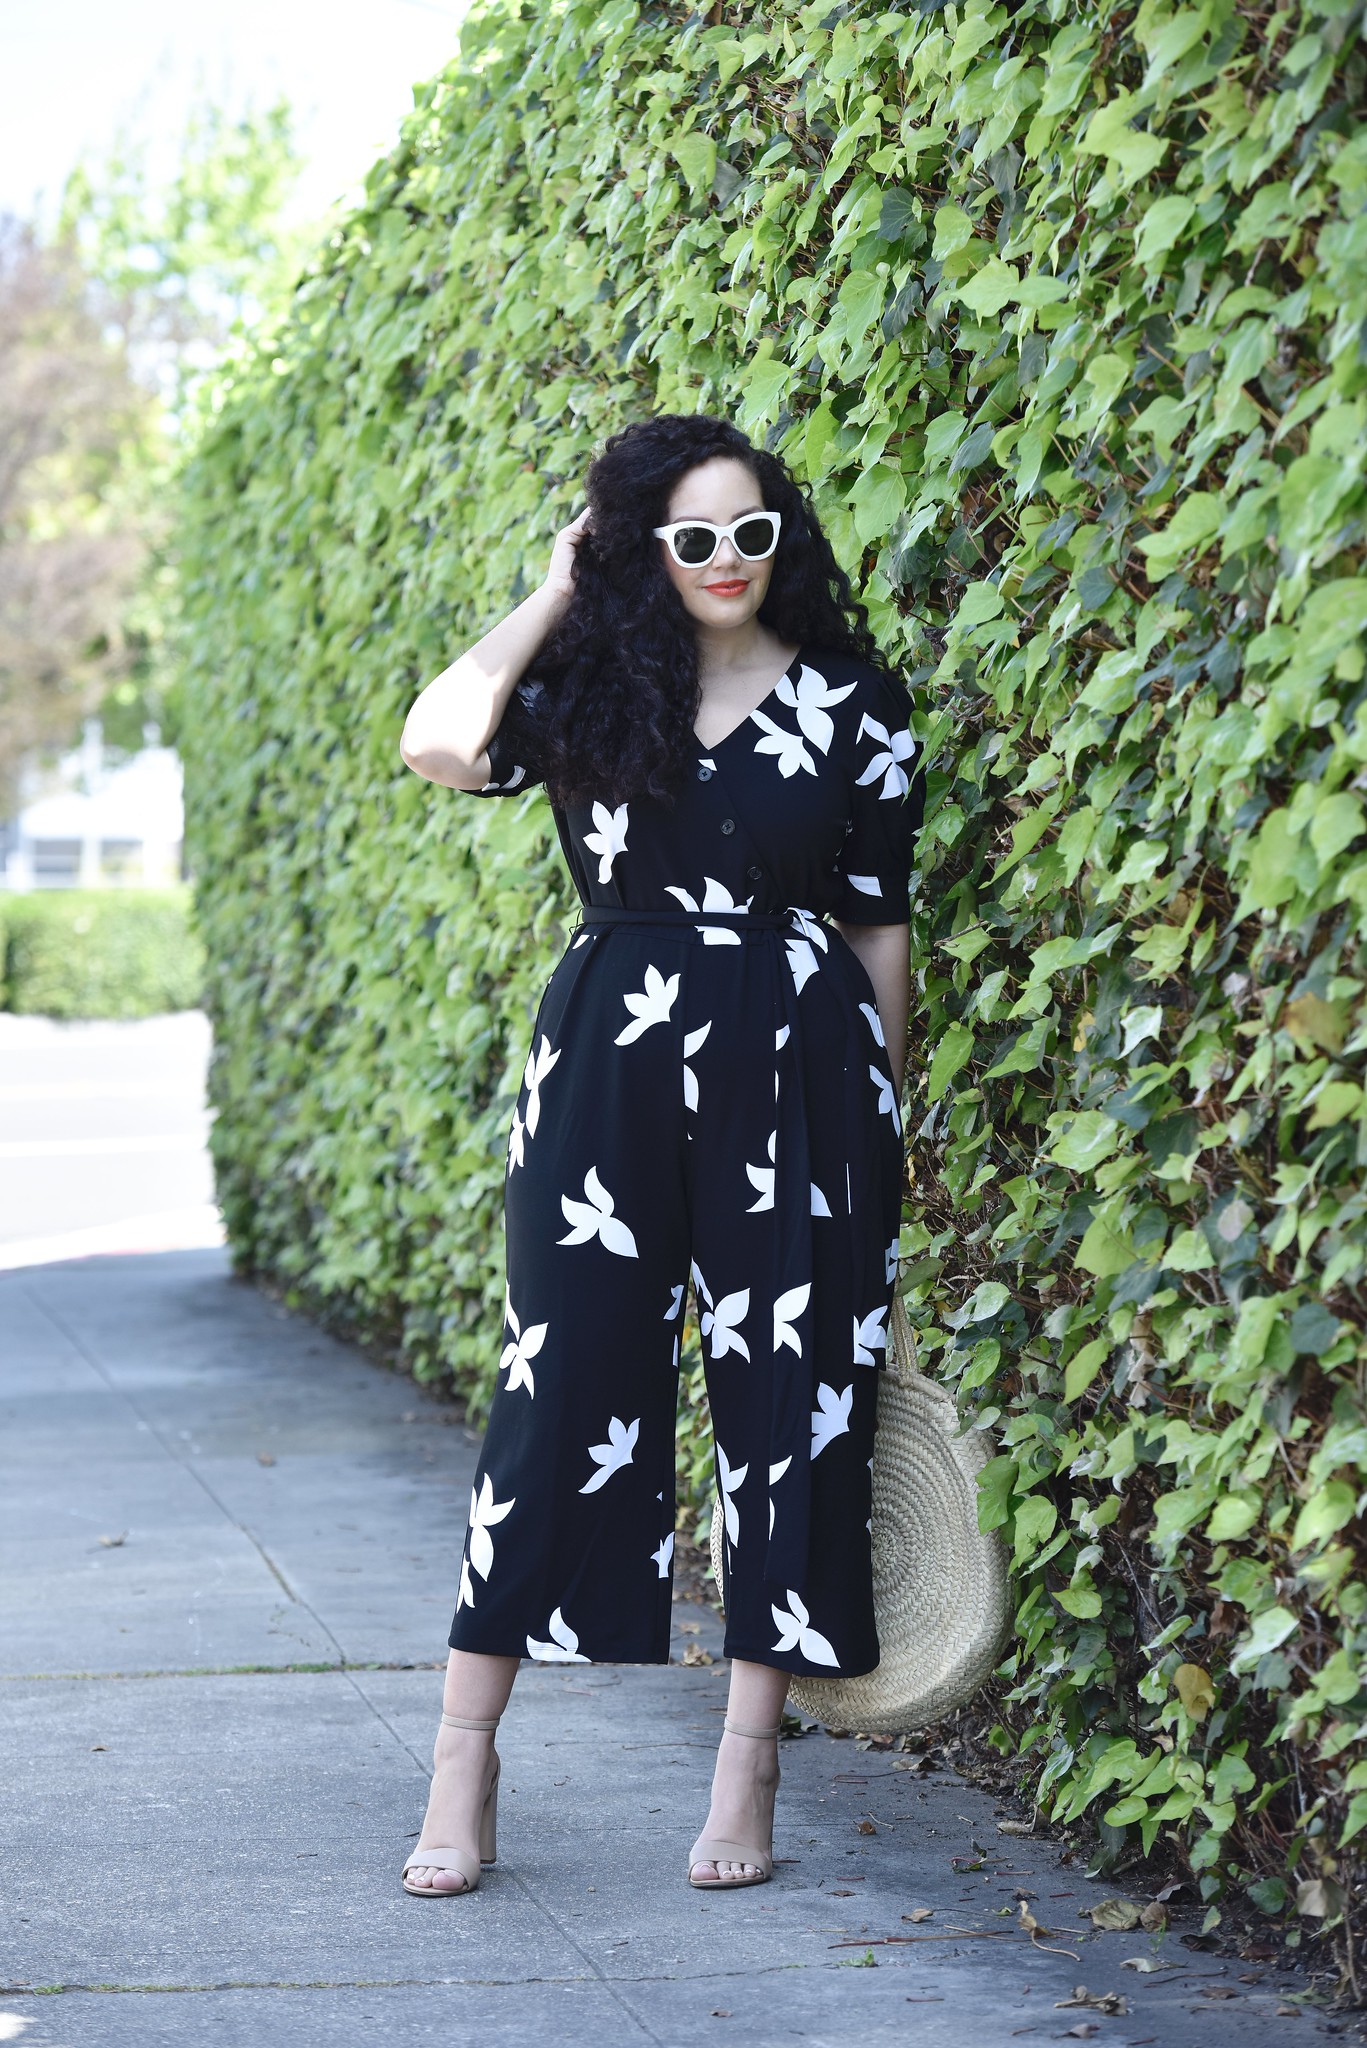 Finally, A Jumpsuit That Flatters Curves Via @GirlWithCurves #jumpsuit #curvy #fashion #style #outfit #blogger